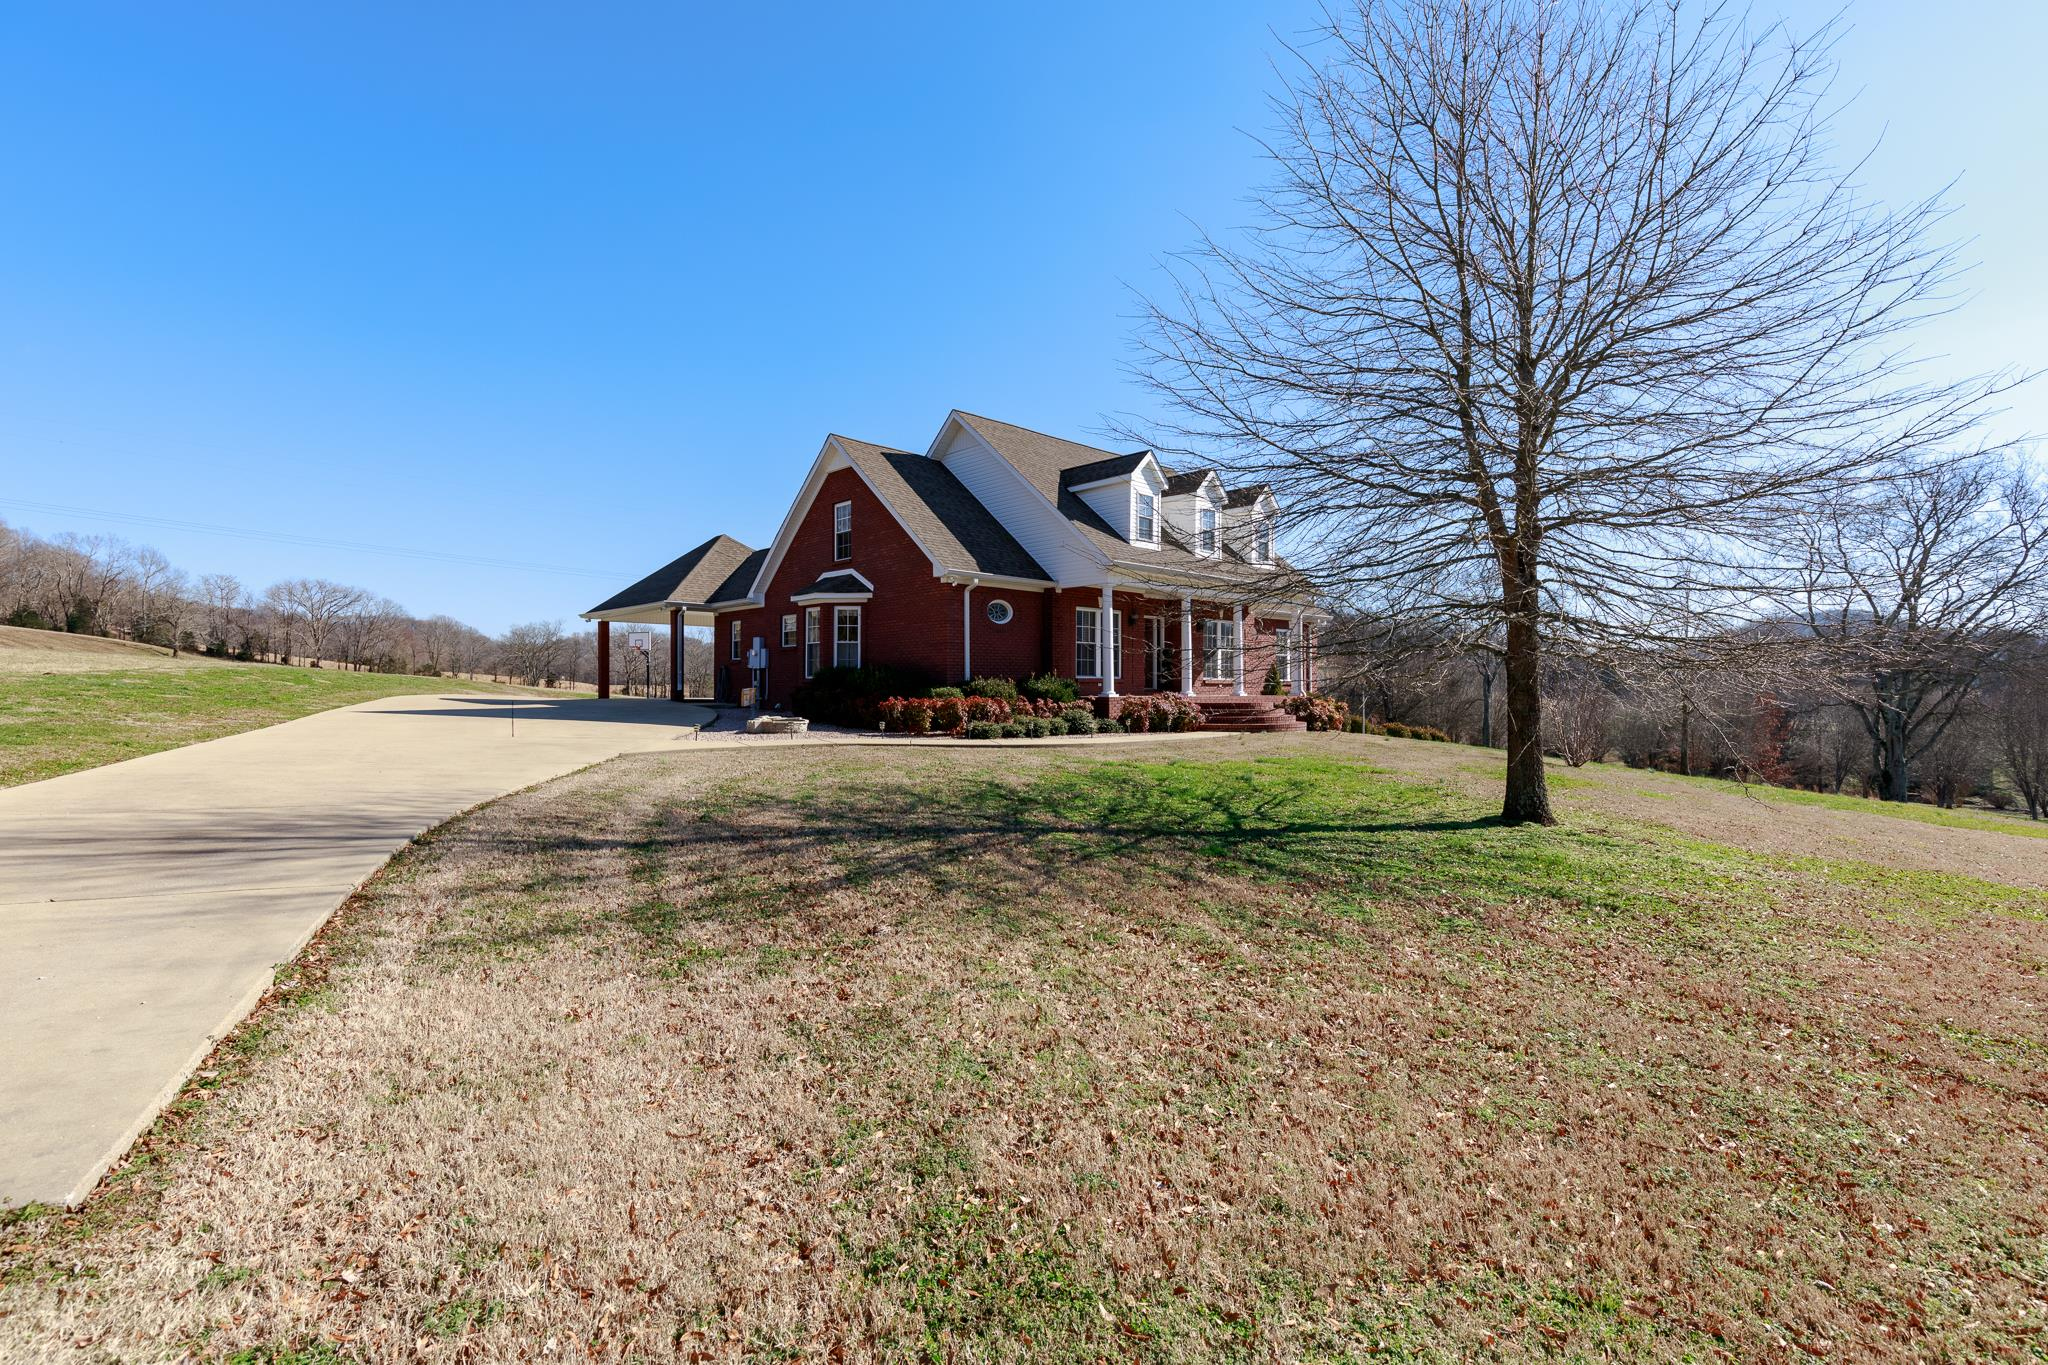 4901 Toll Dugger Rd, Culleoka, TN 38451 - Culleoka, TN real estate listing